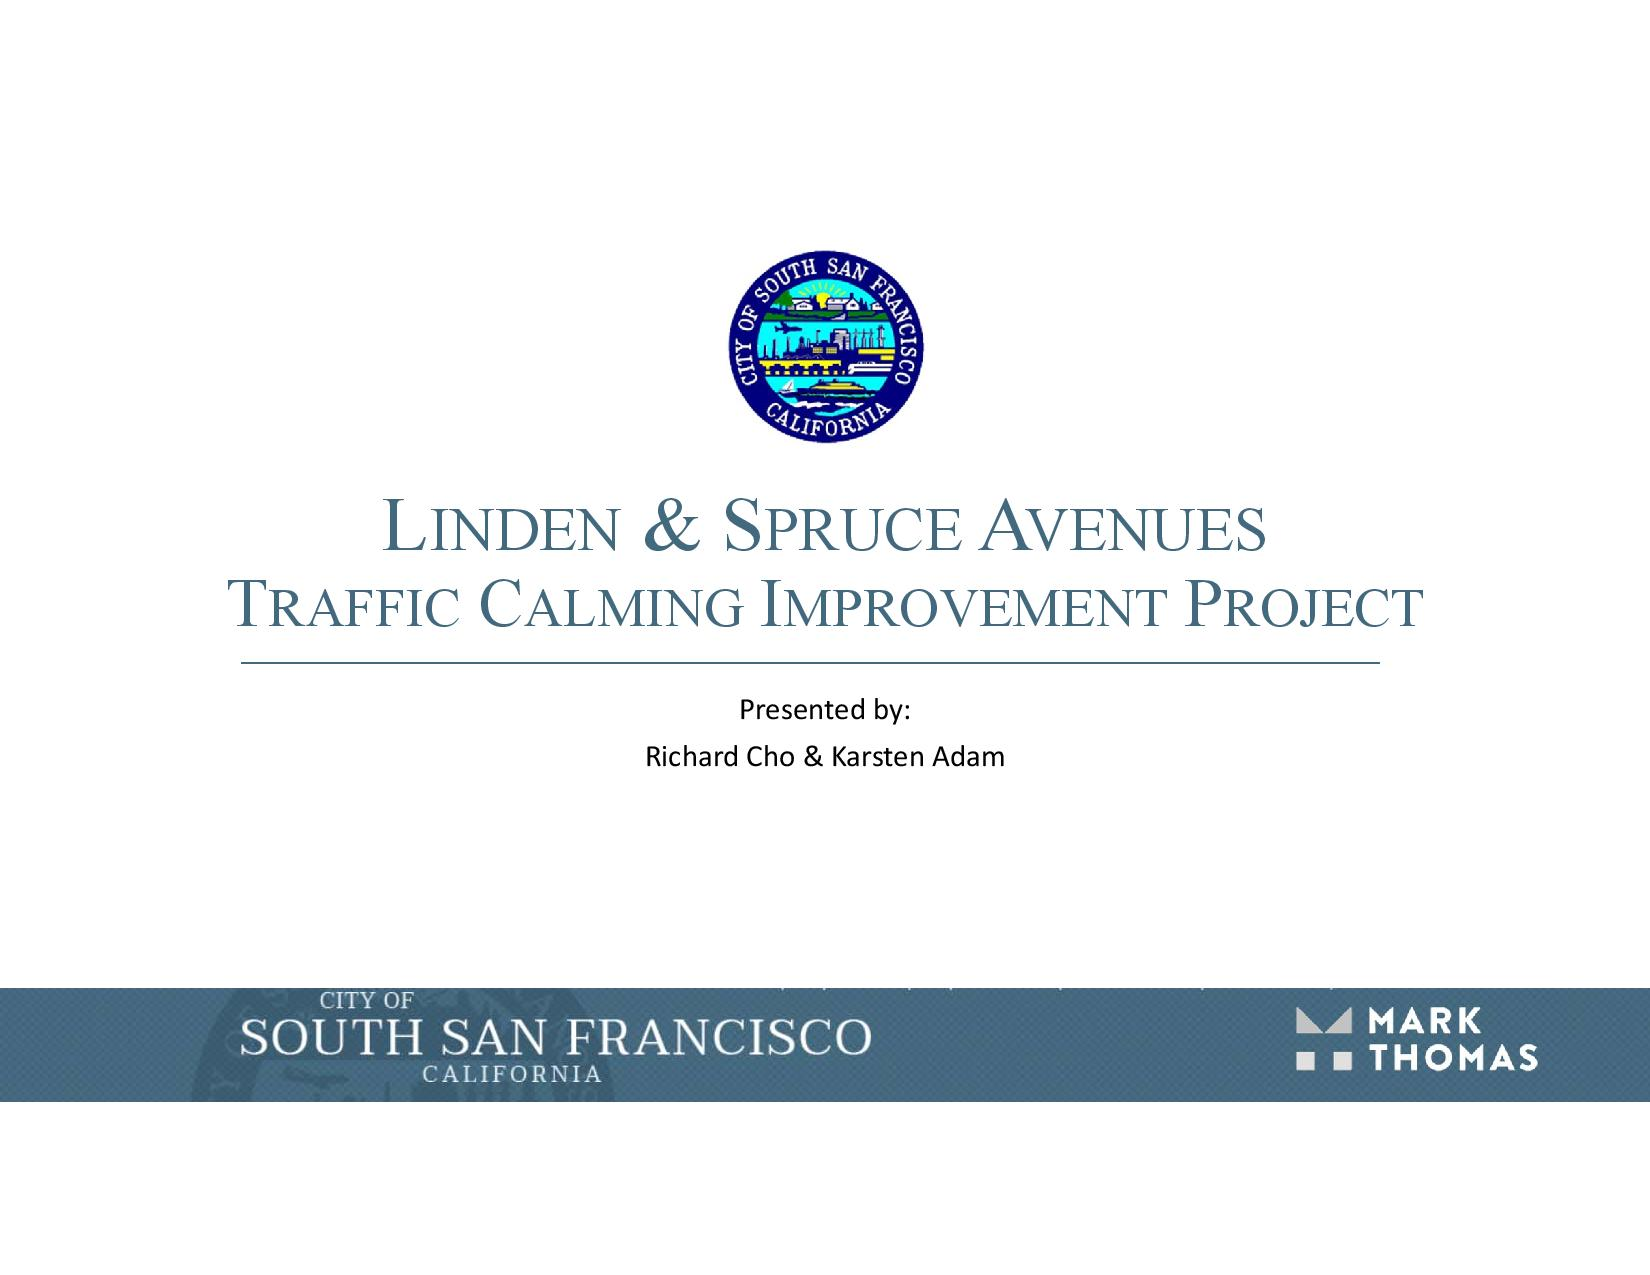 South San Francisco Traffic Calming Project for Linden and Spruce Avenues